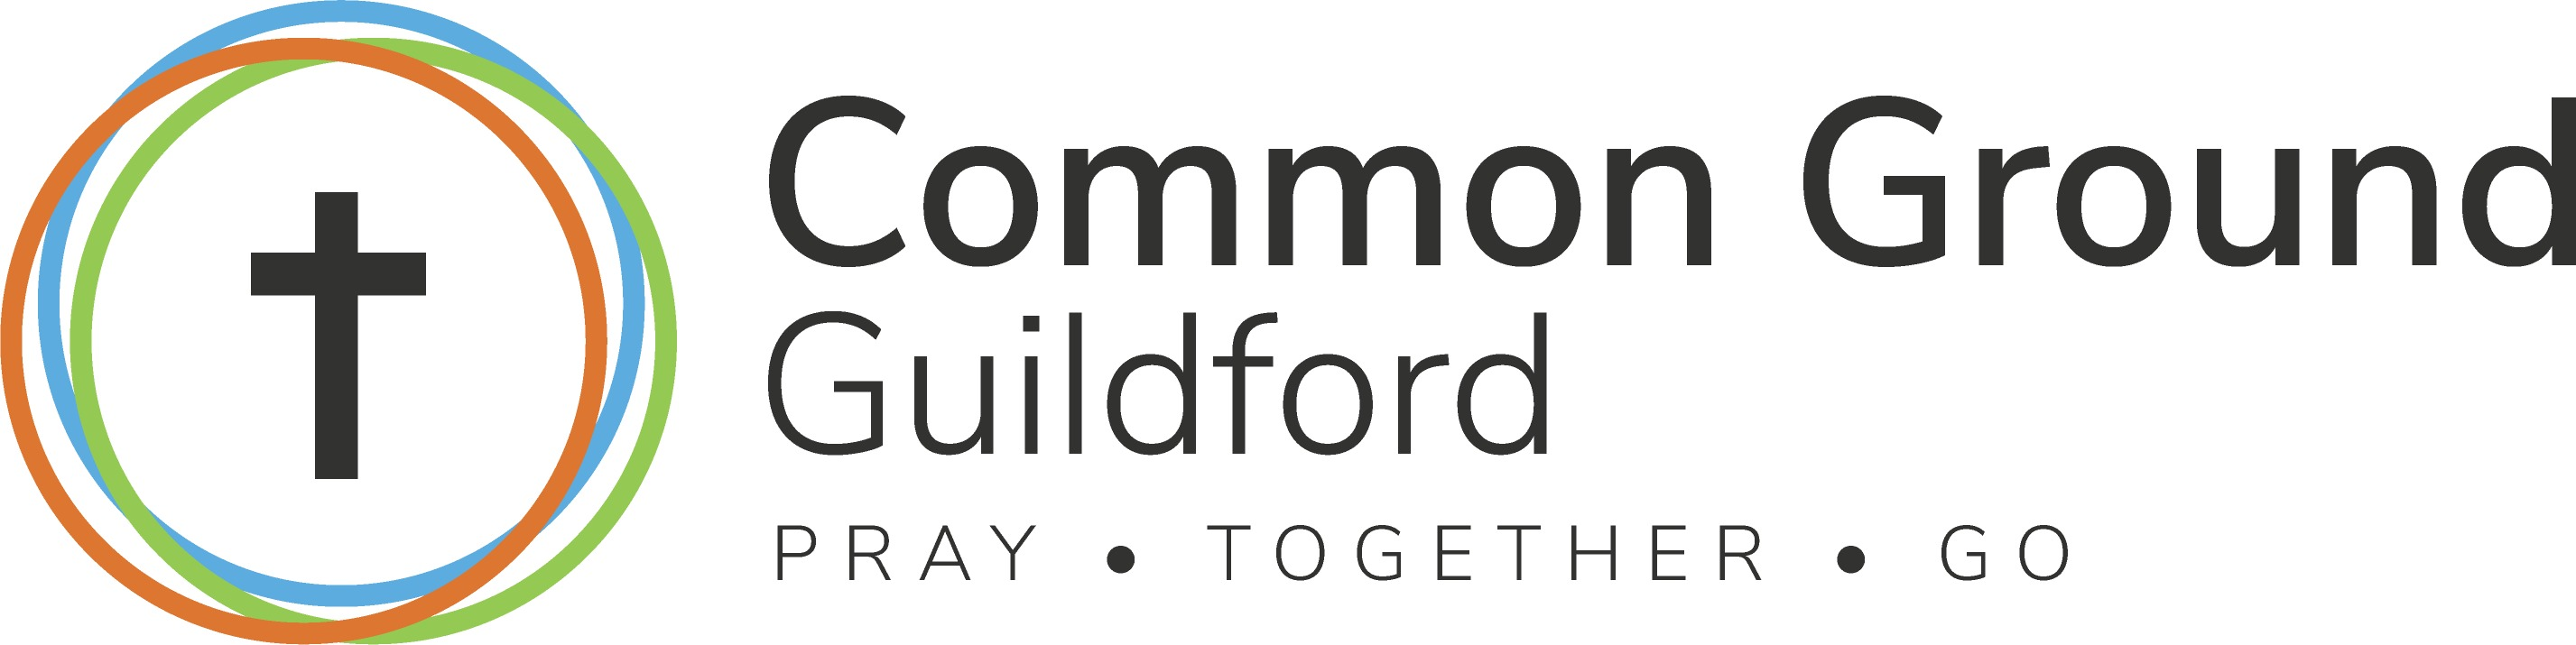 Common Ground Guildford